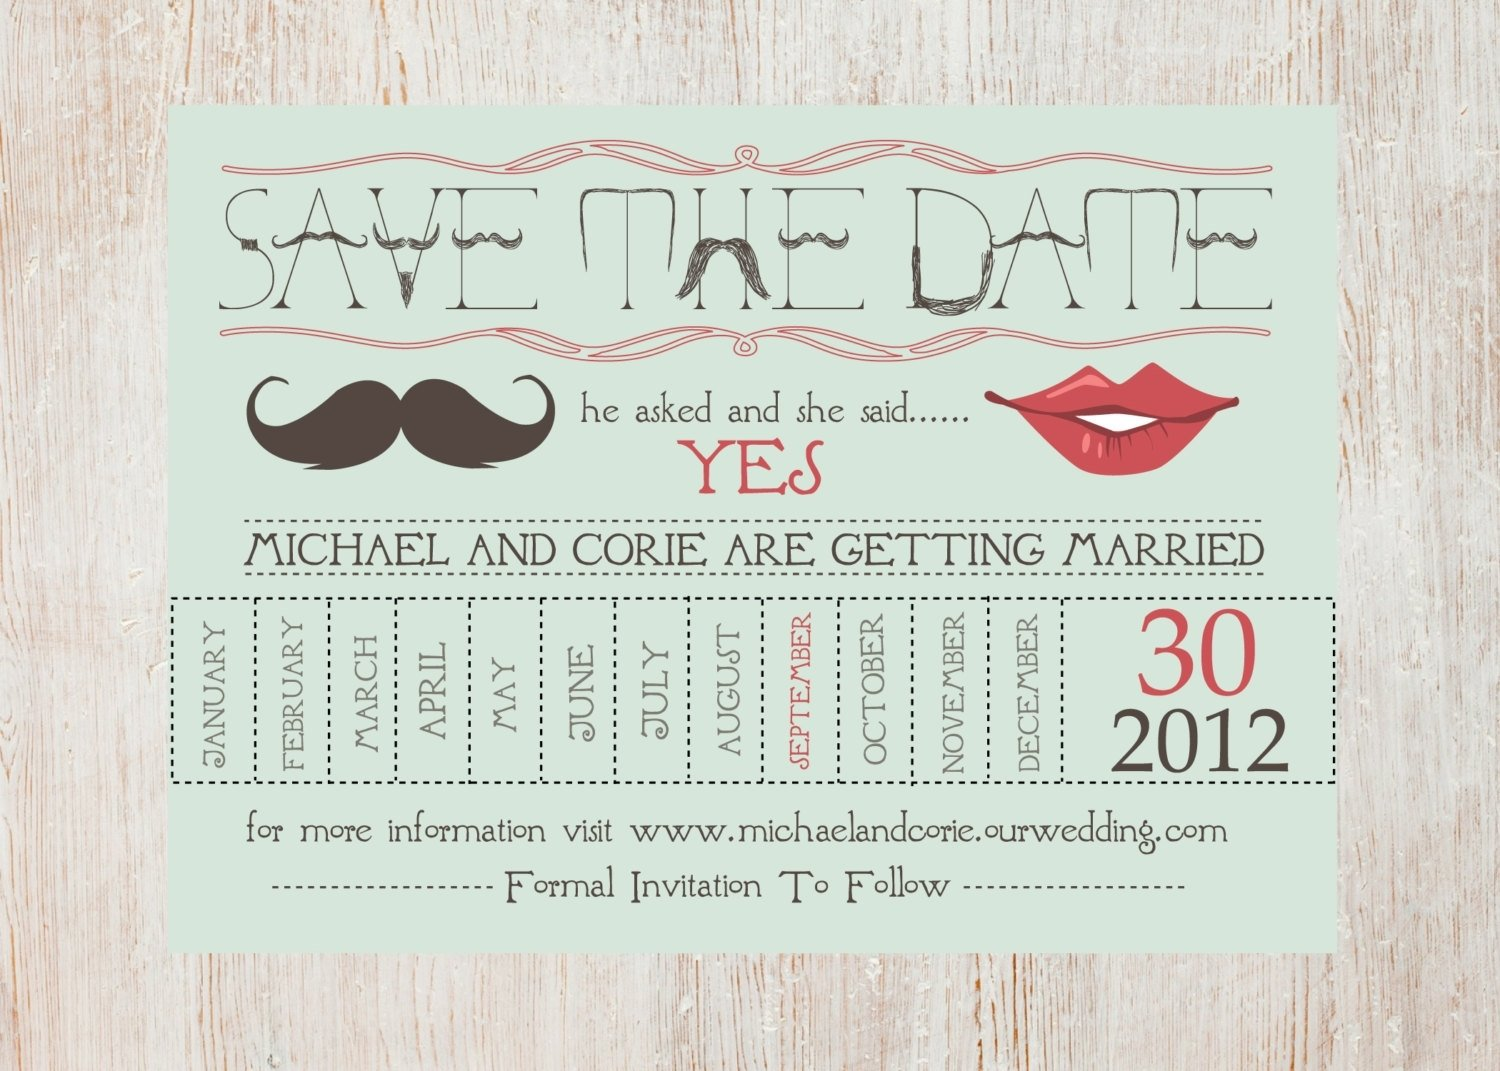 10 Elegant Save The Date Ideas Pinterest brilliant wedding save the dates 17 best images about casamento save 2020